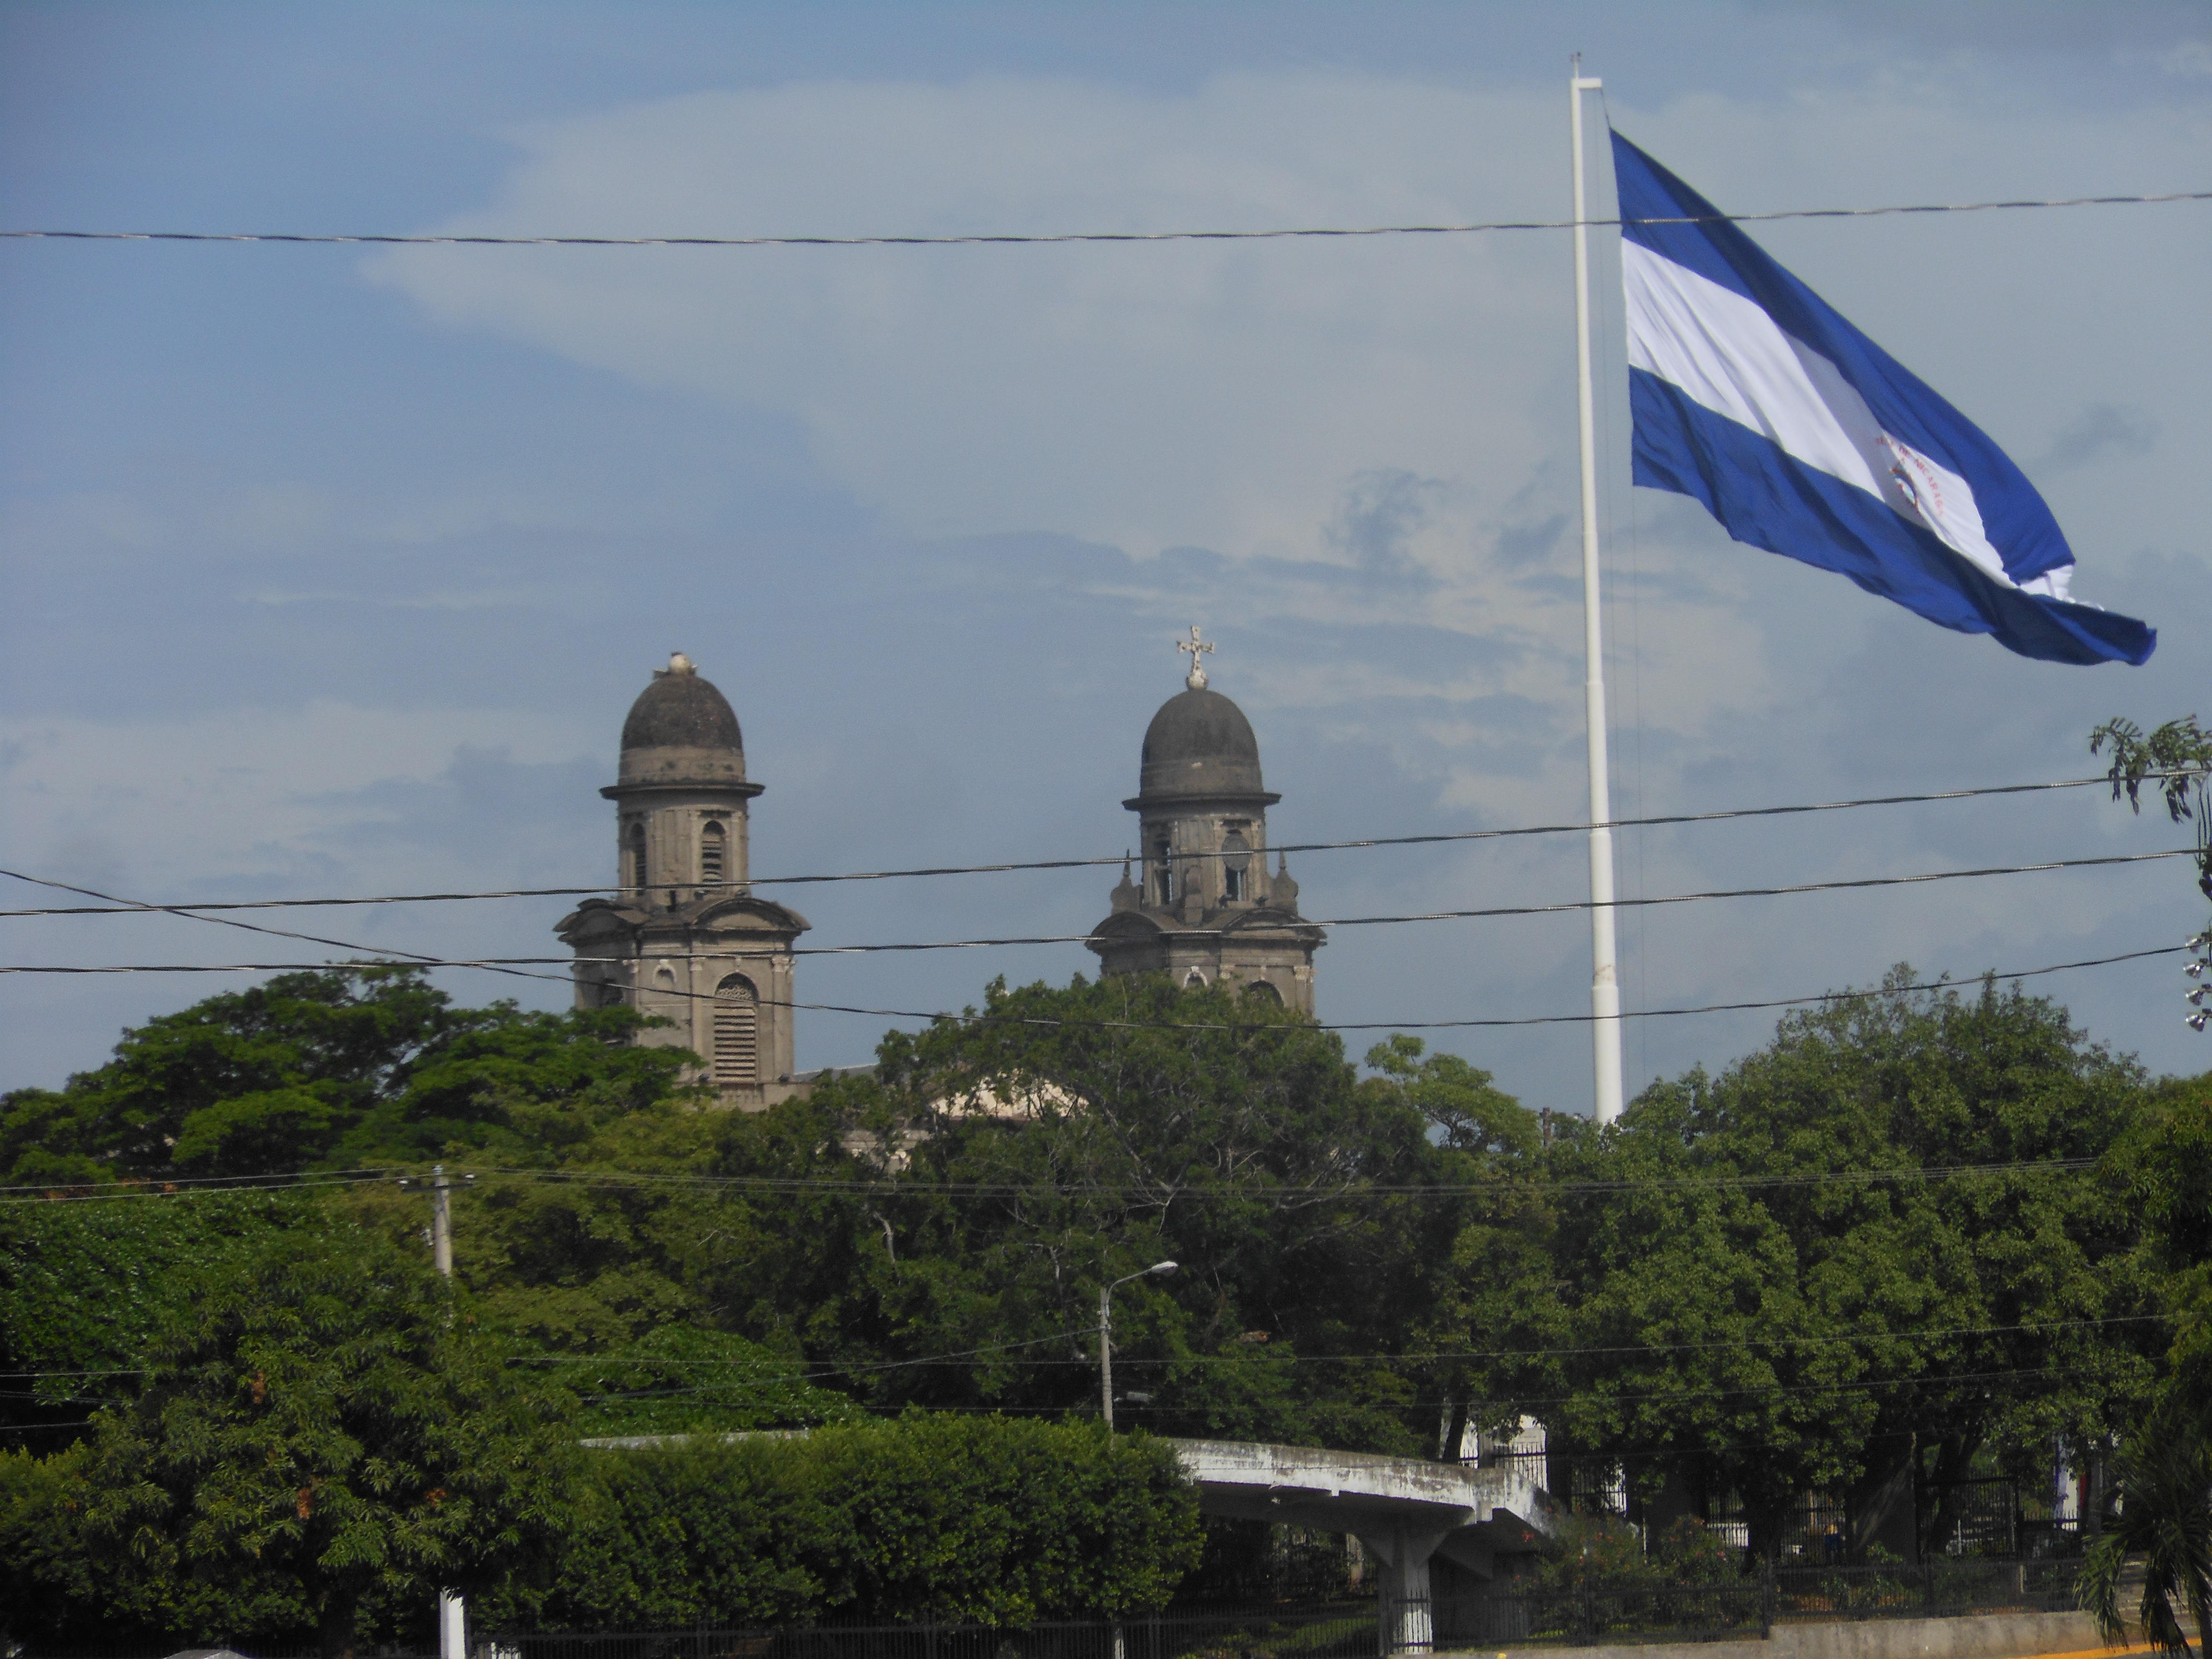 The Old City in Managua